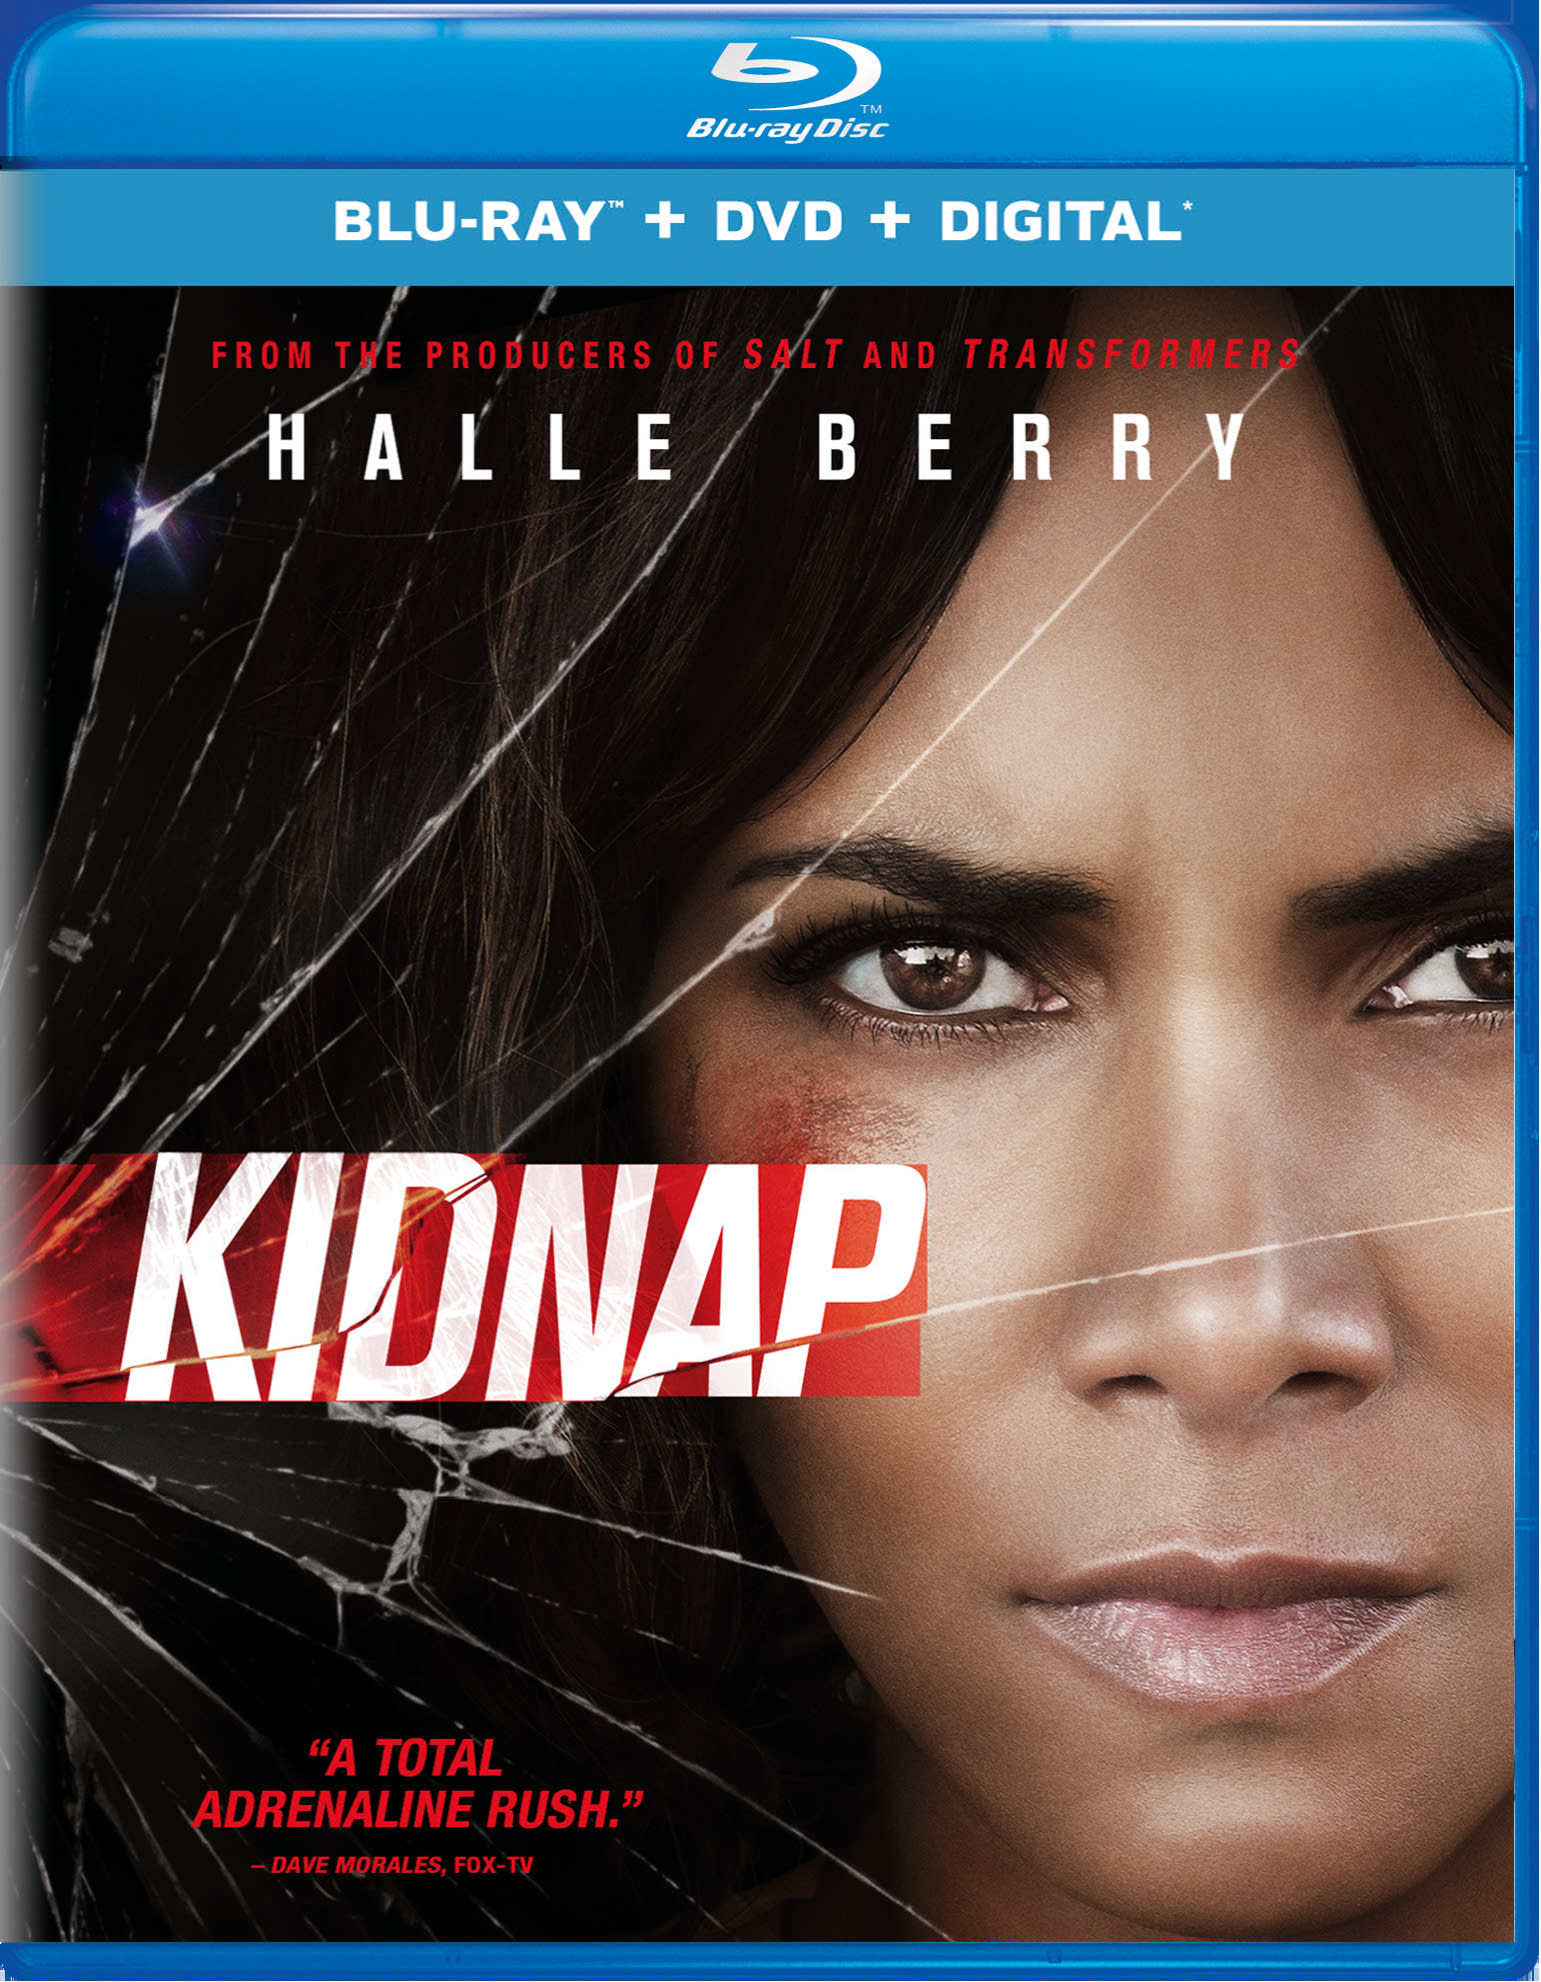 Kidnap (DVD + Digital) [Blu-ray]